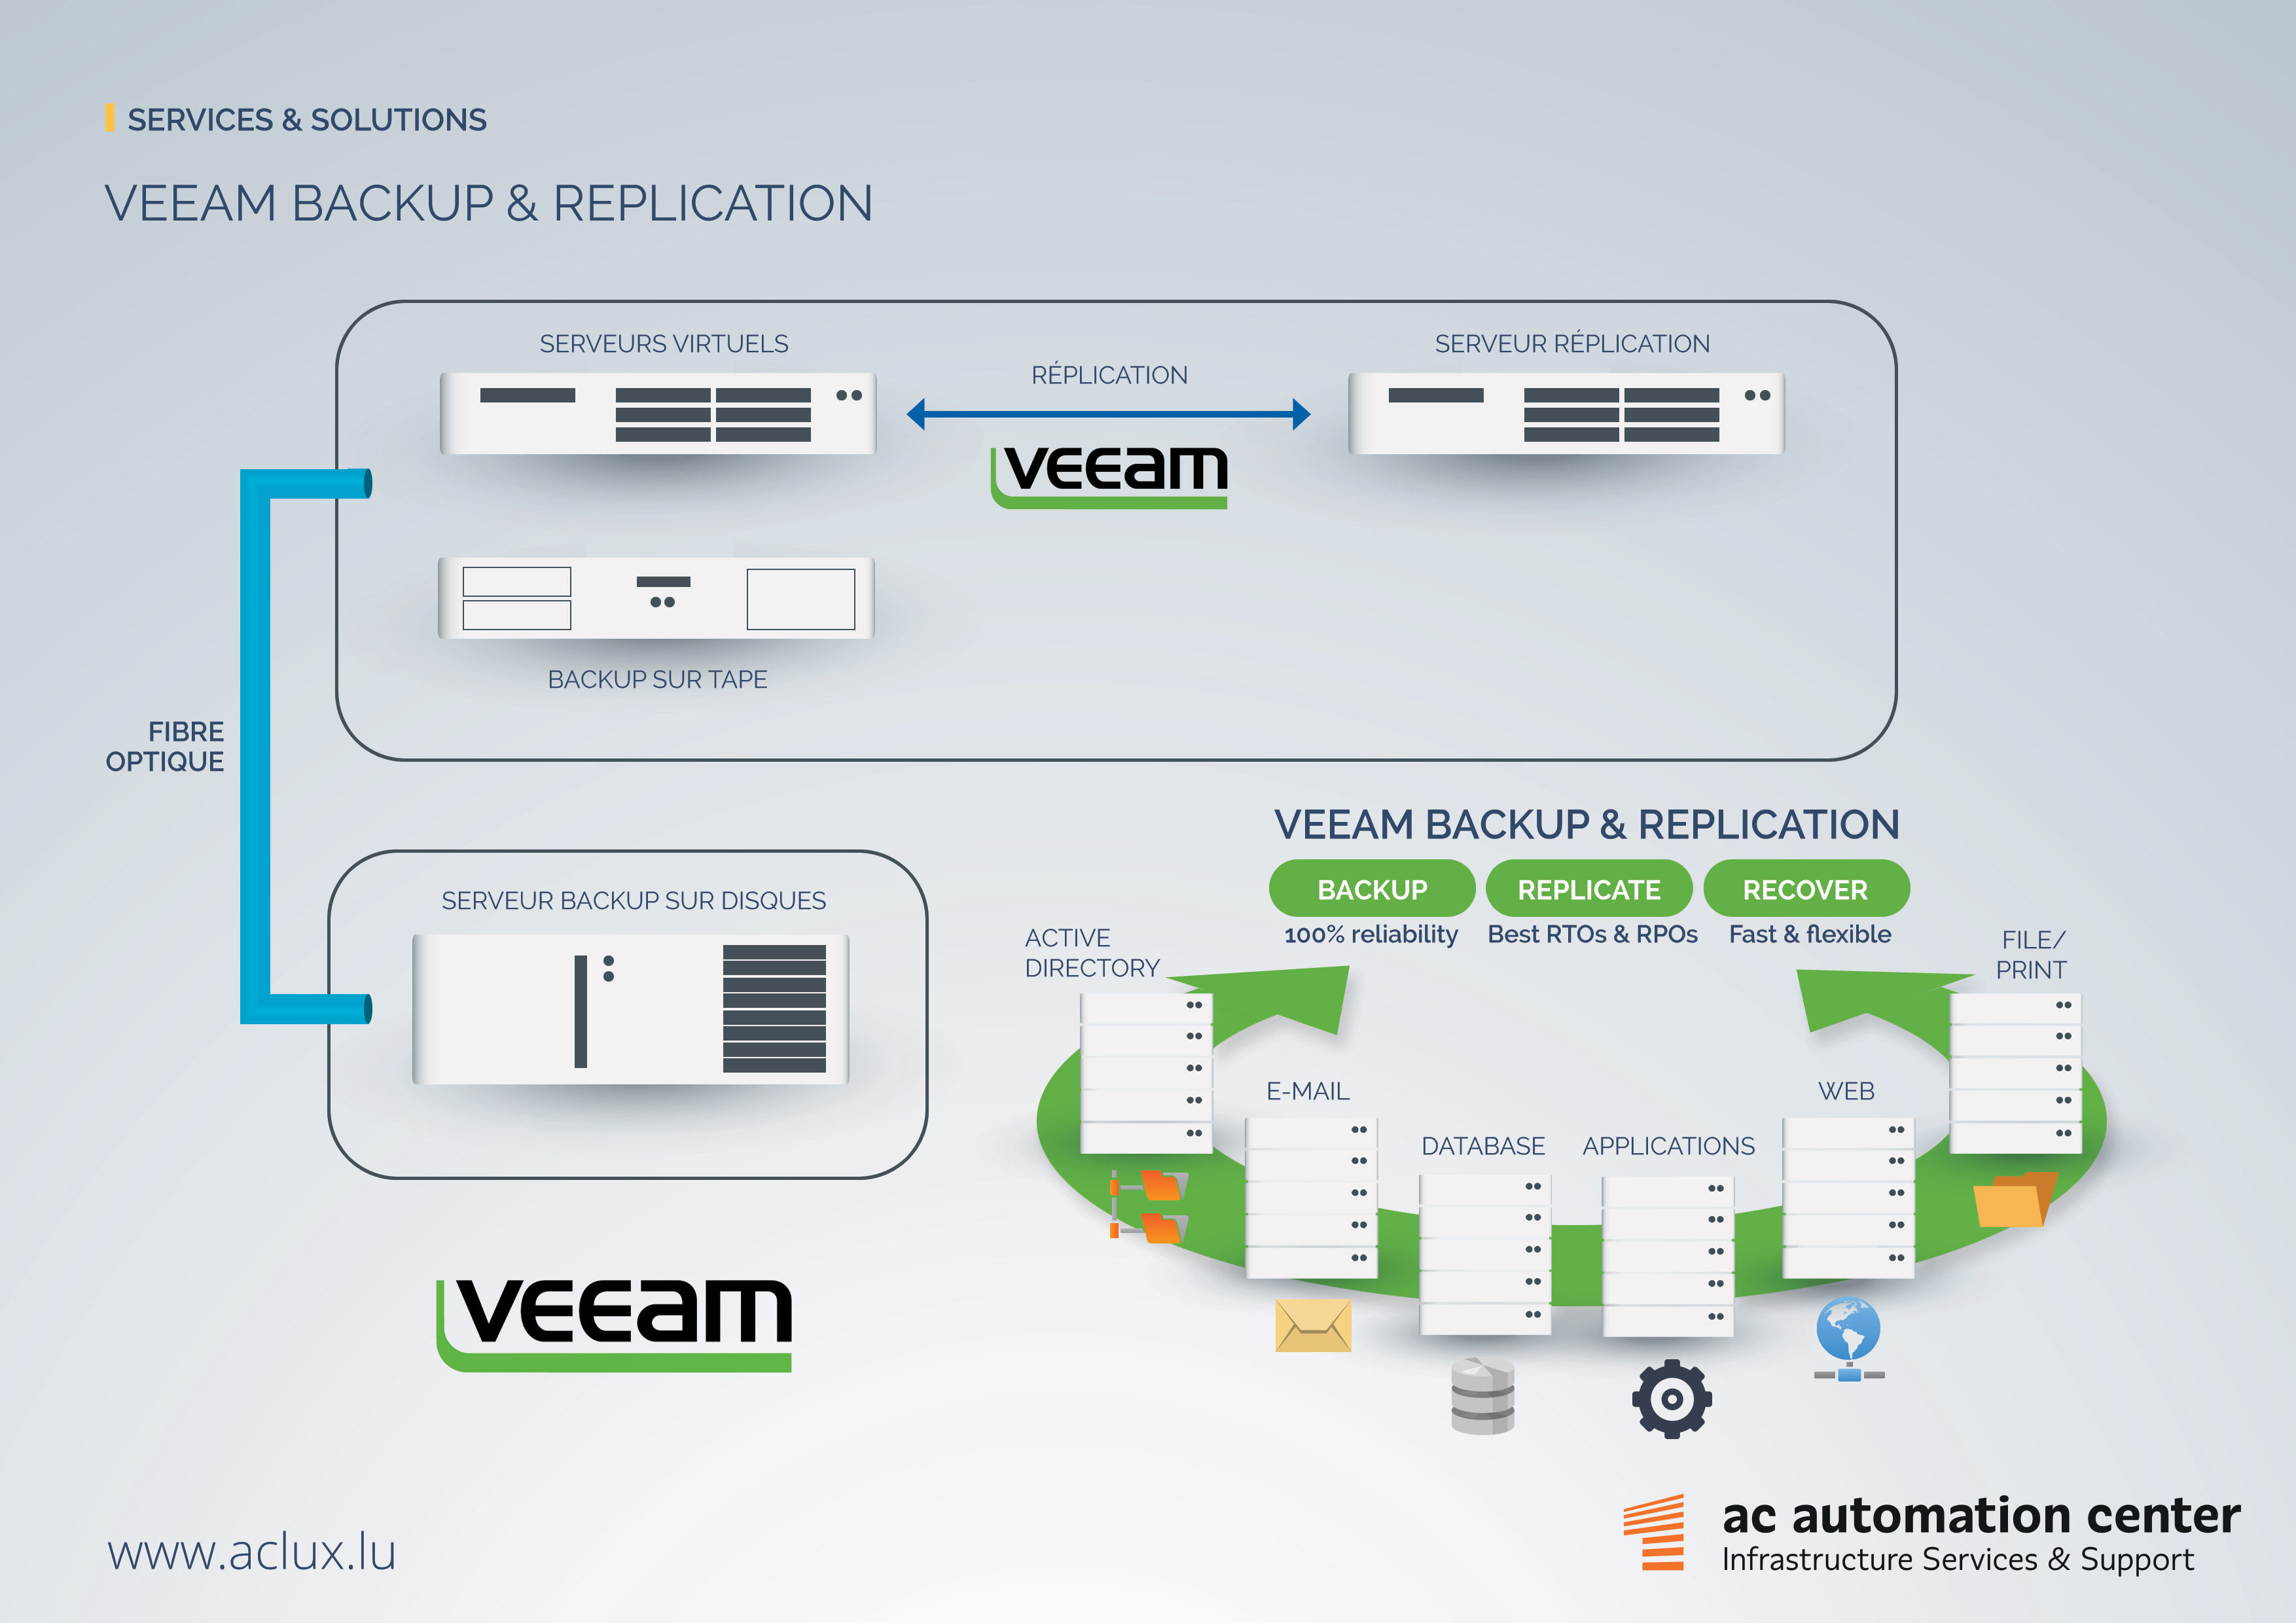 AC Automation: Veeam backup replication